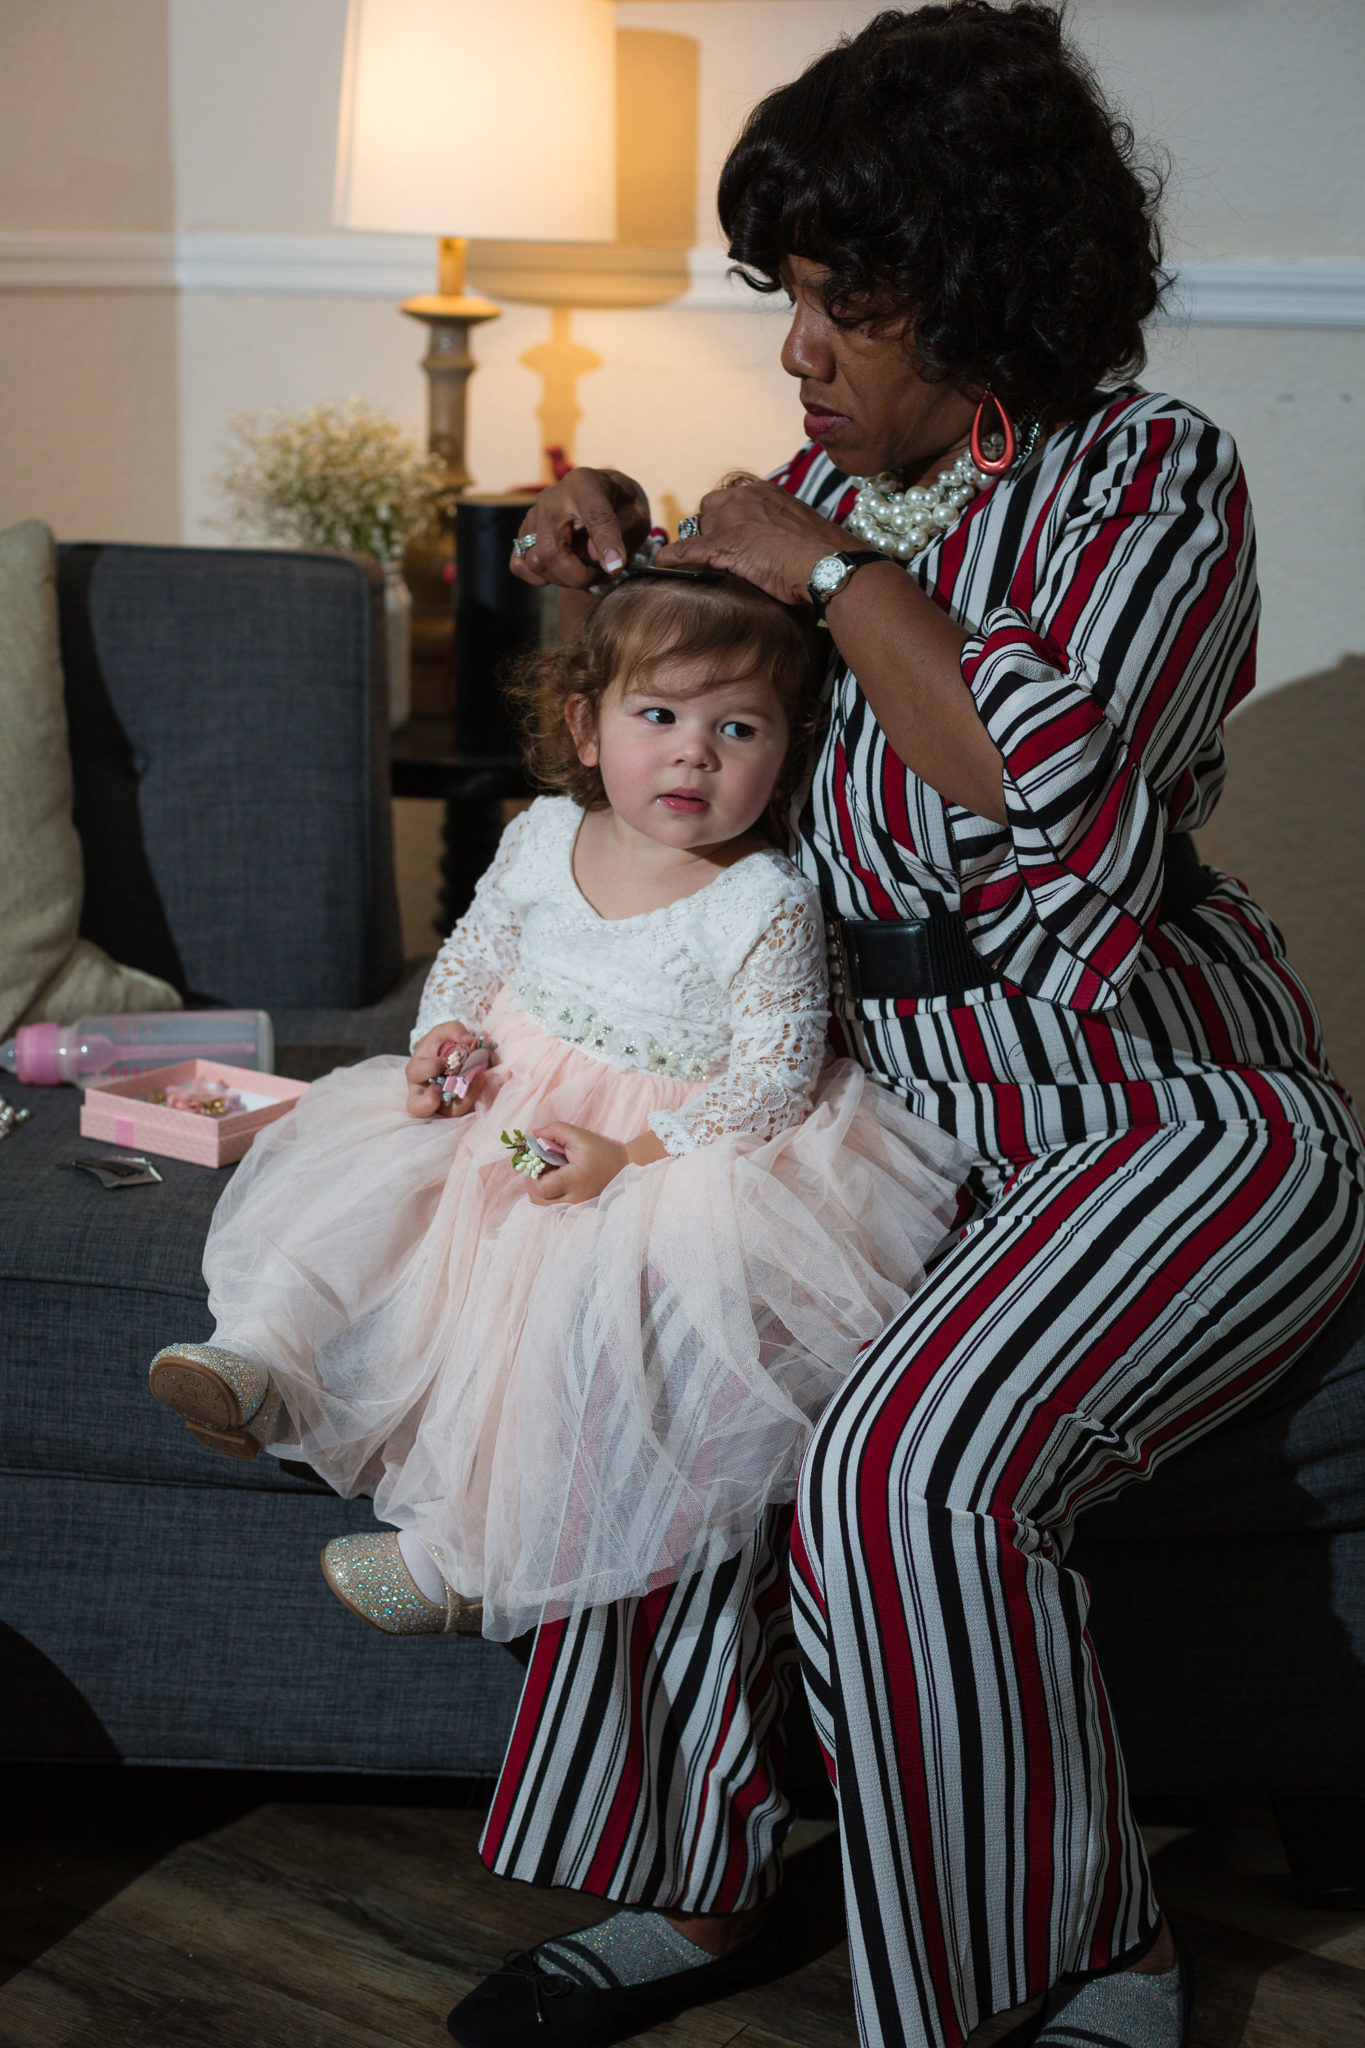 The bride and groom's daughter getting her hair done. So precious!